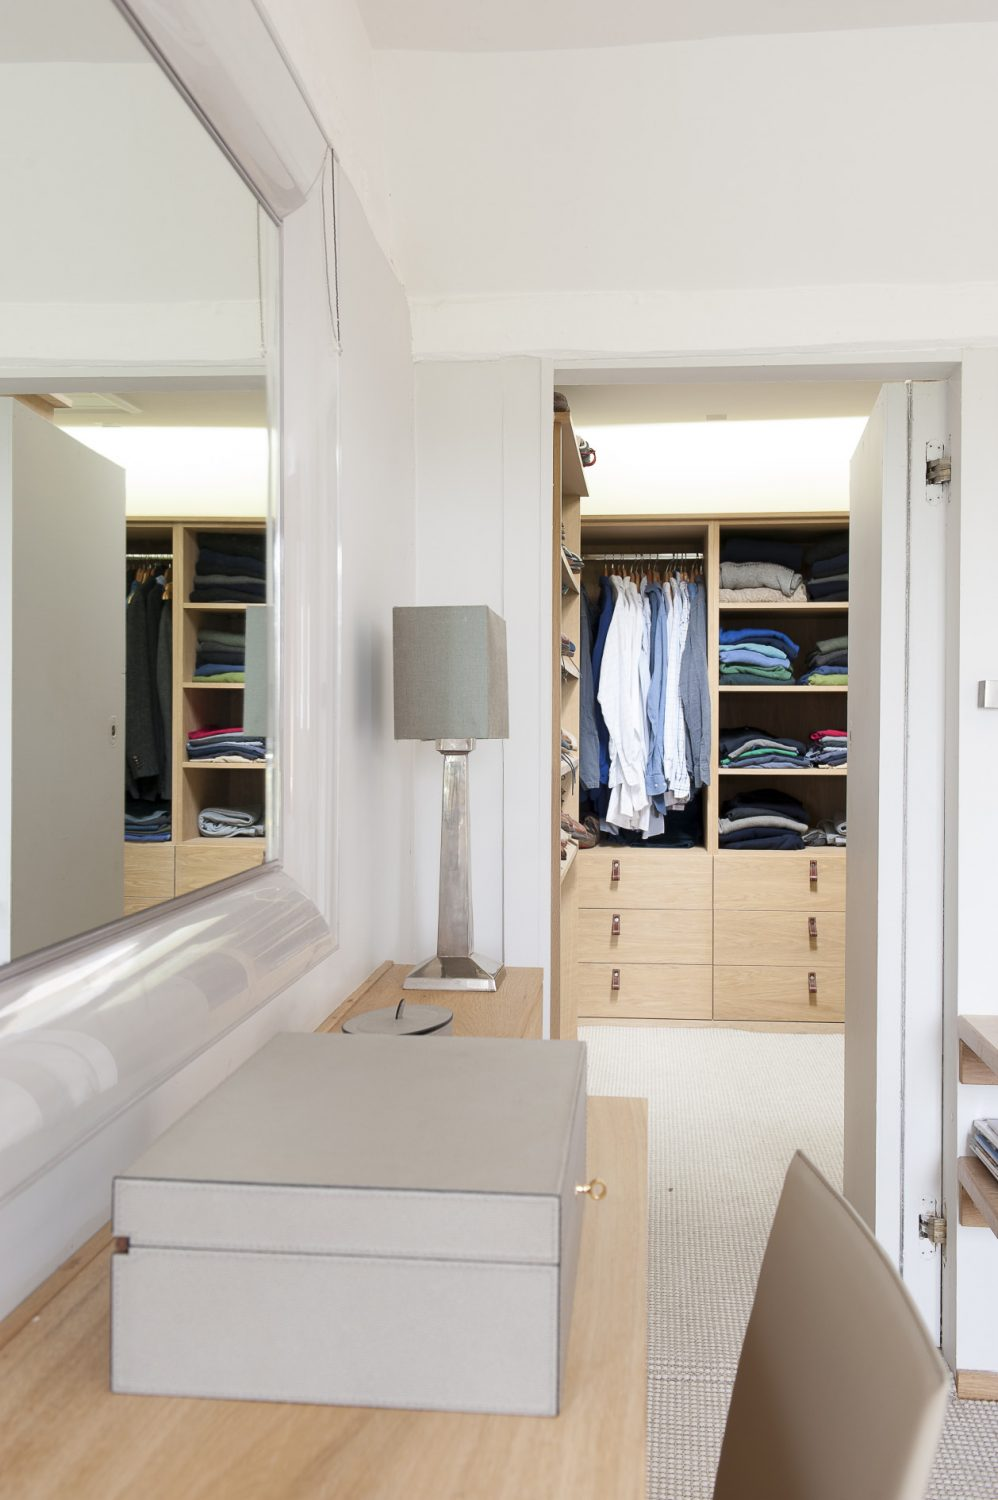 A view into the master bedroom's enviable dressing room